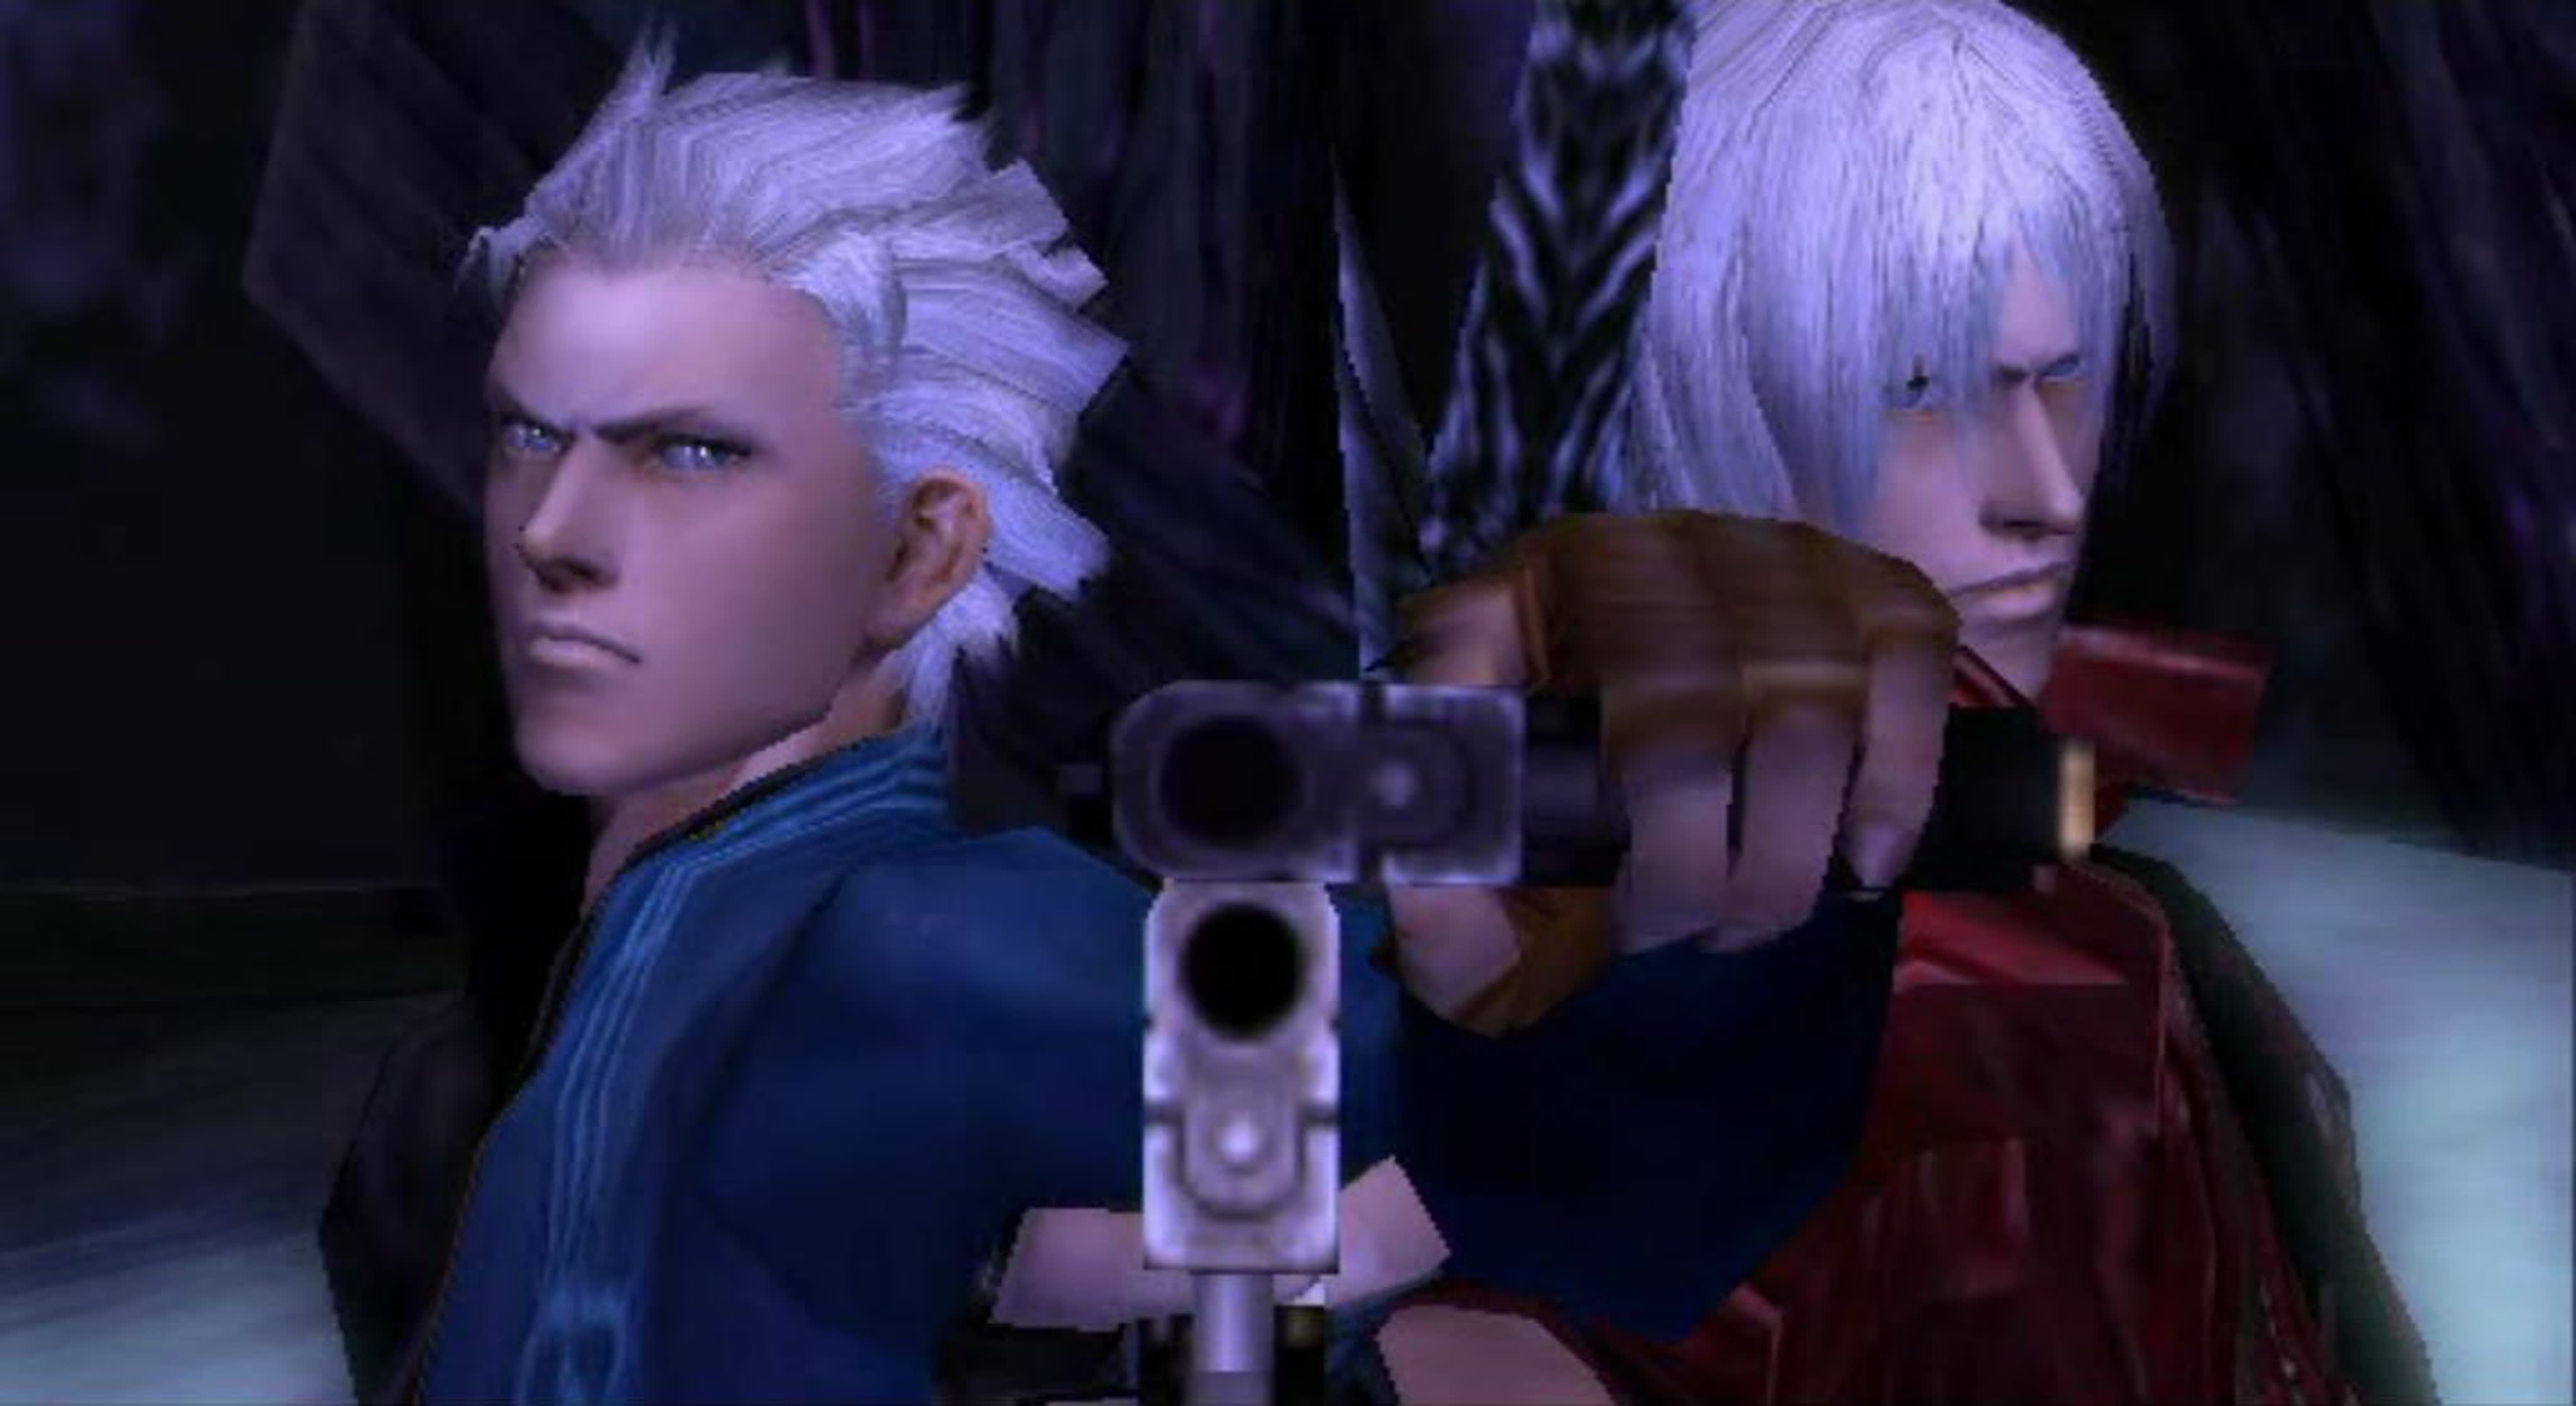 http://static1.wikia.nocookie.net/__cb20100901190328/devilmaycry/images/4/41/Jackpot.jpg